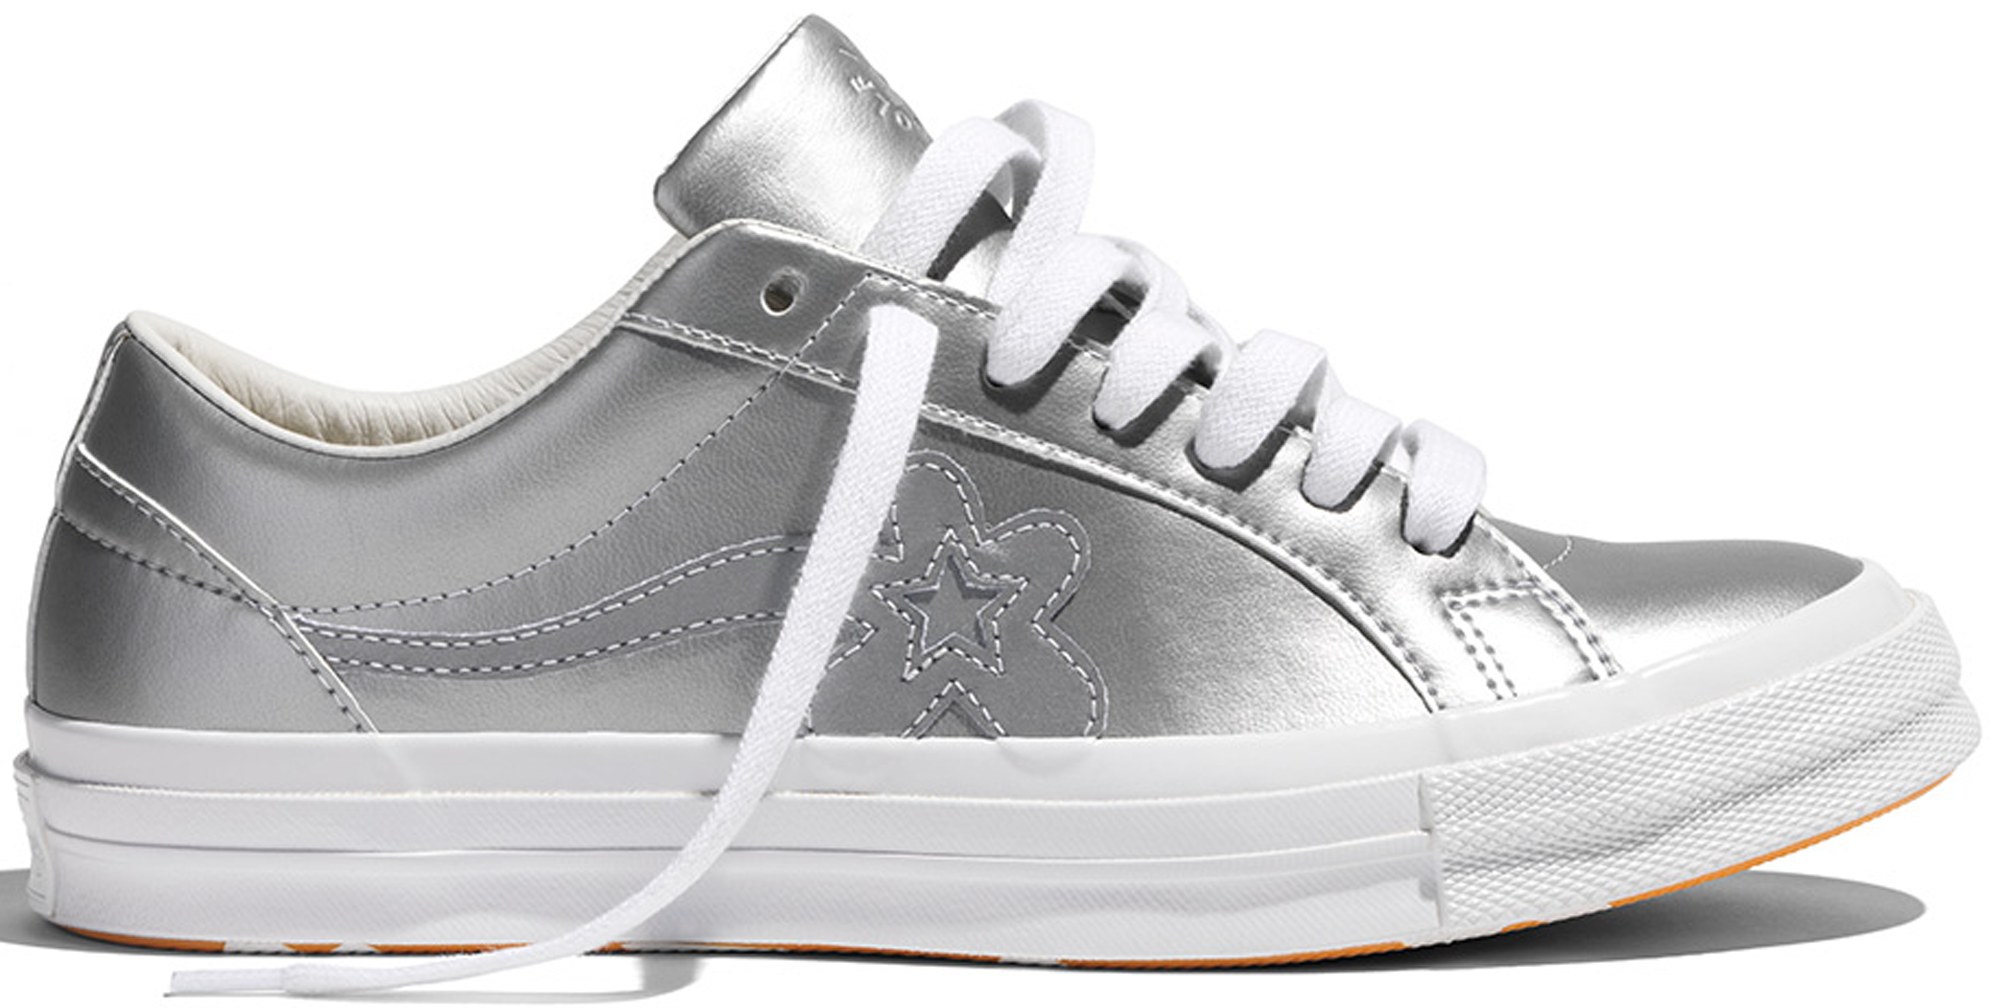 Converse One Star Ox Golf Le Fleur 3M